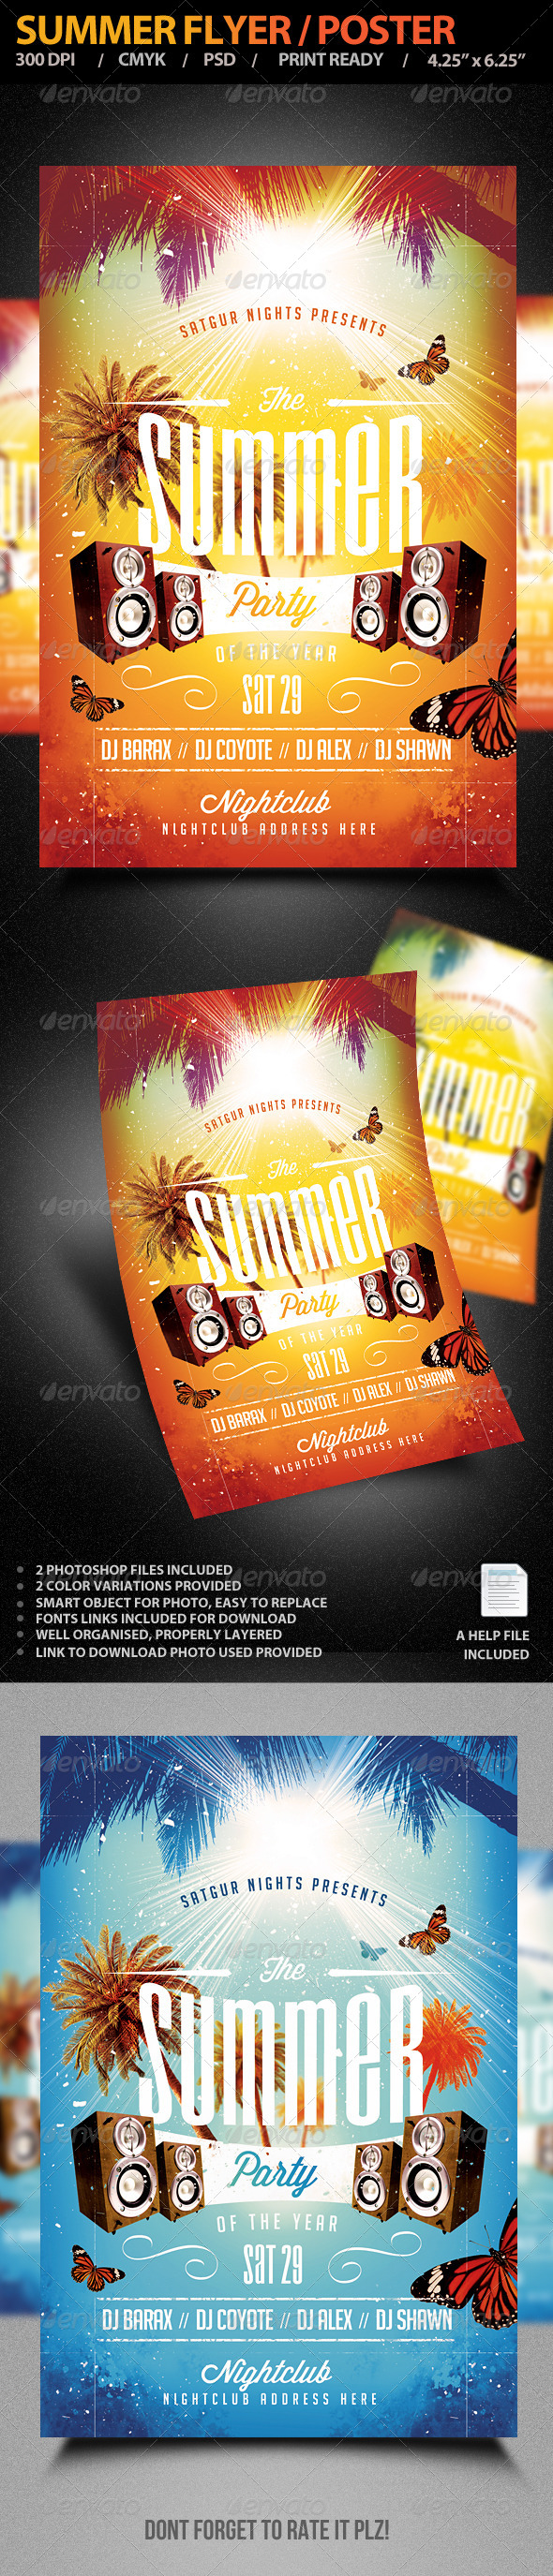 GraphicRiver Summer Flyer Poster 7869663